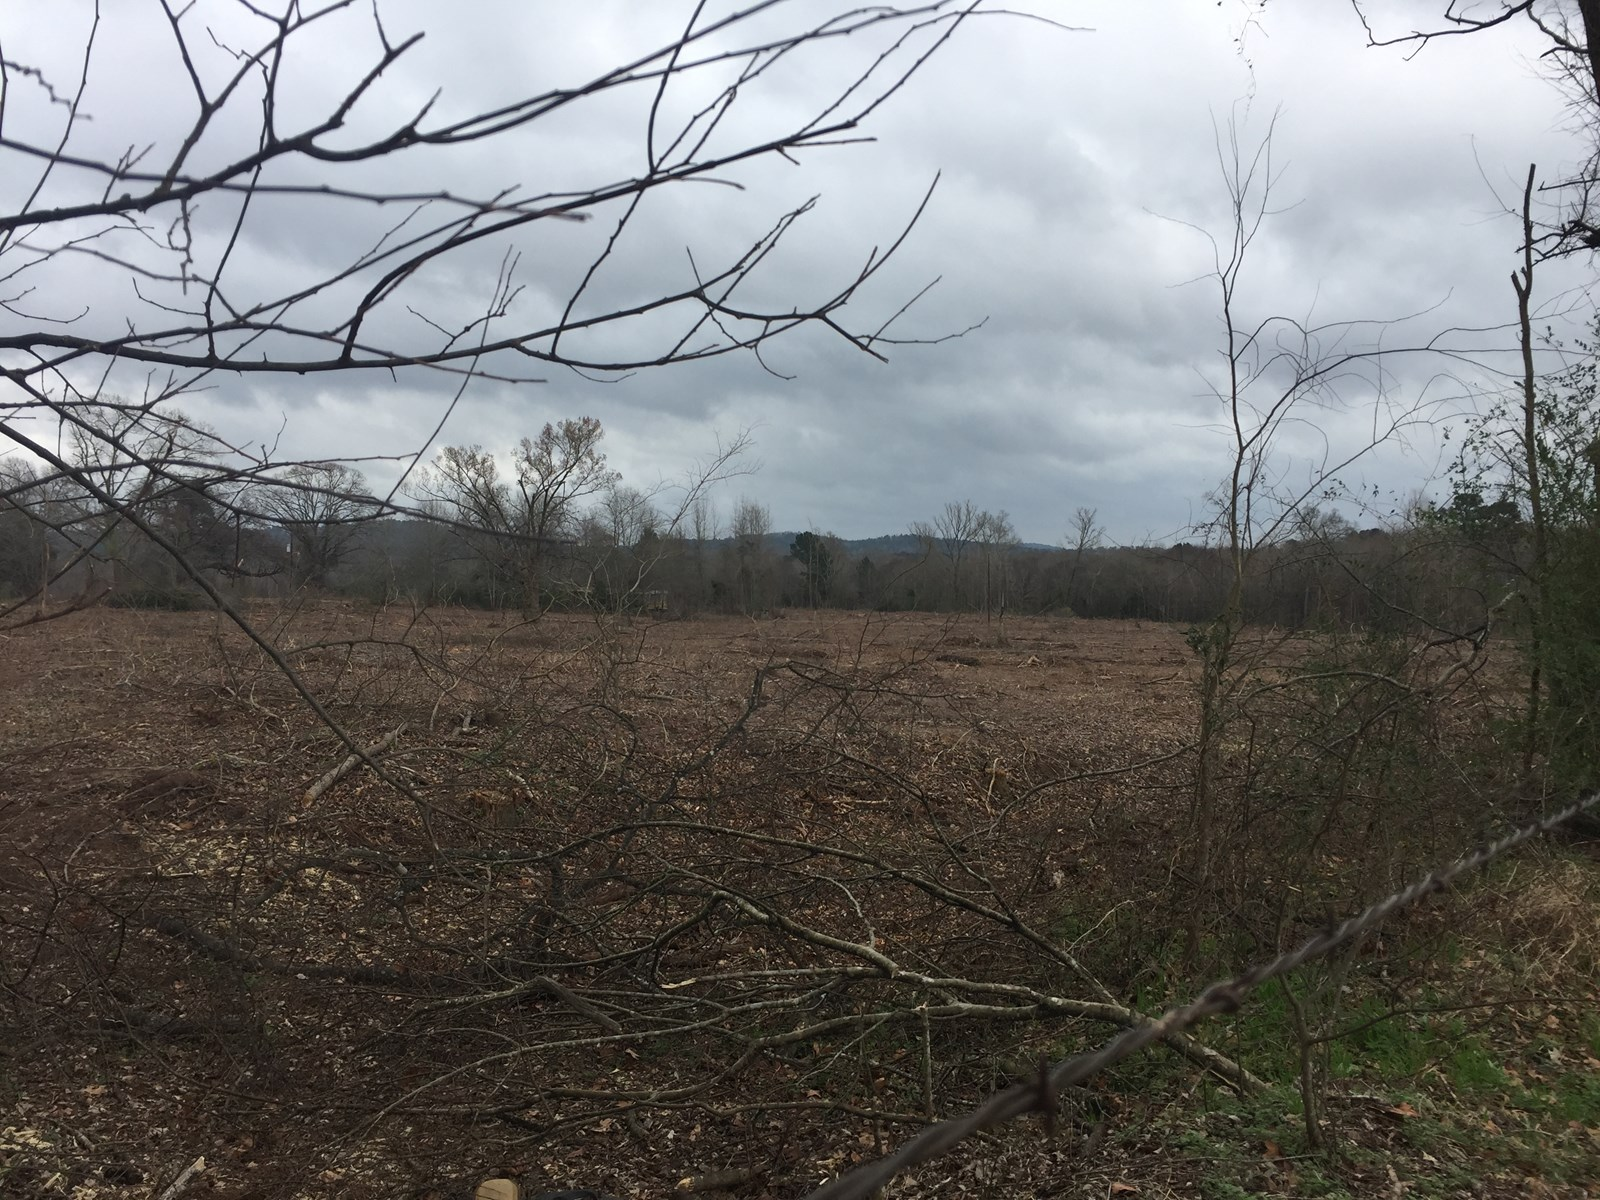 Hunting/Recreational Land, Cherokee County, Rusk, TX